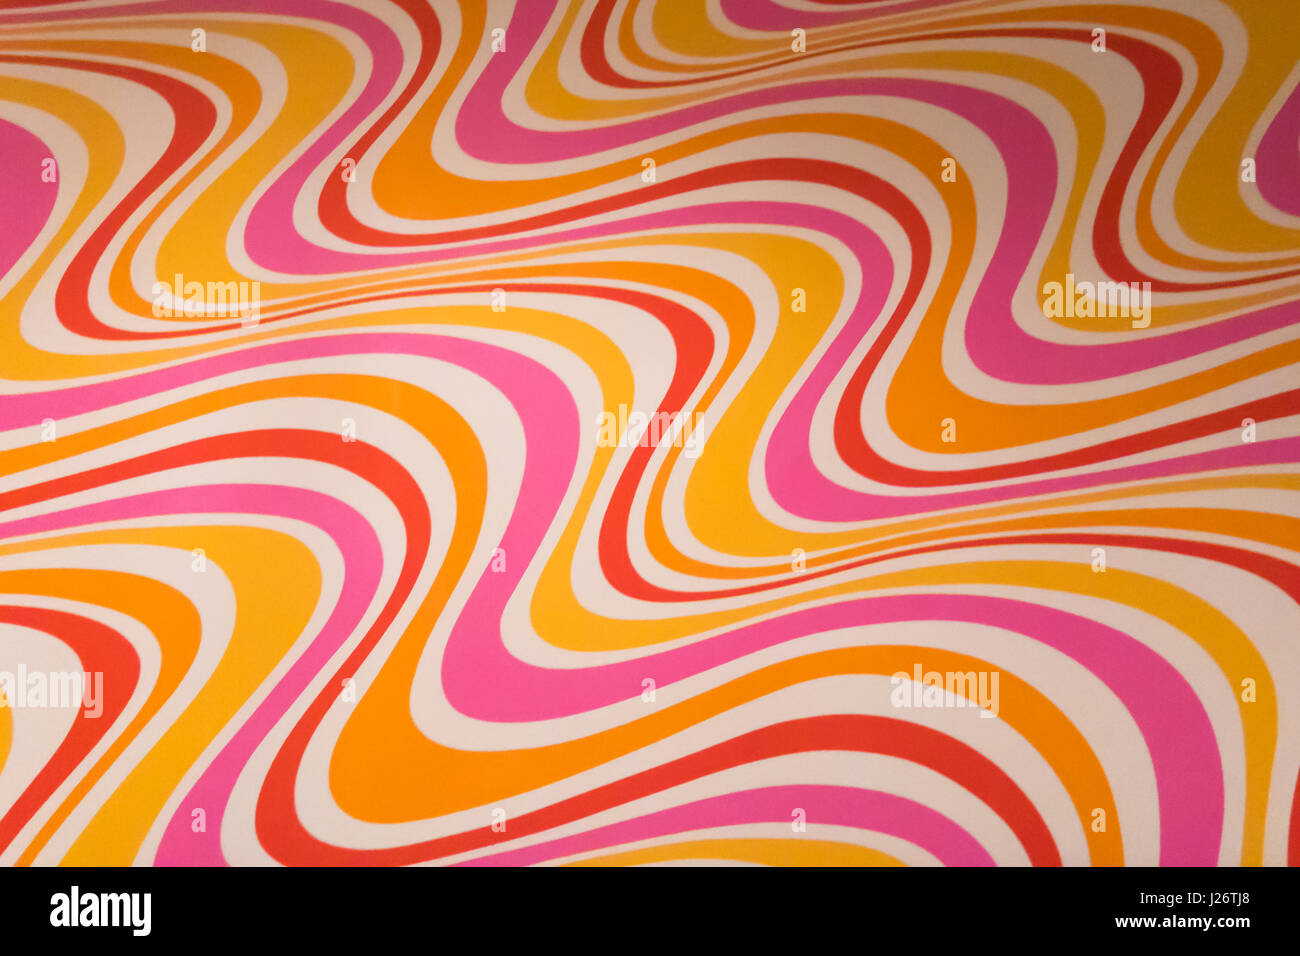 Seventies wallpaper stockfotos seventies wallpaper for Tapete gelb muster